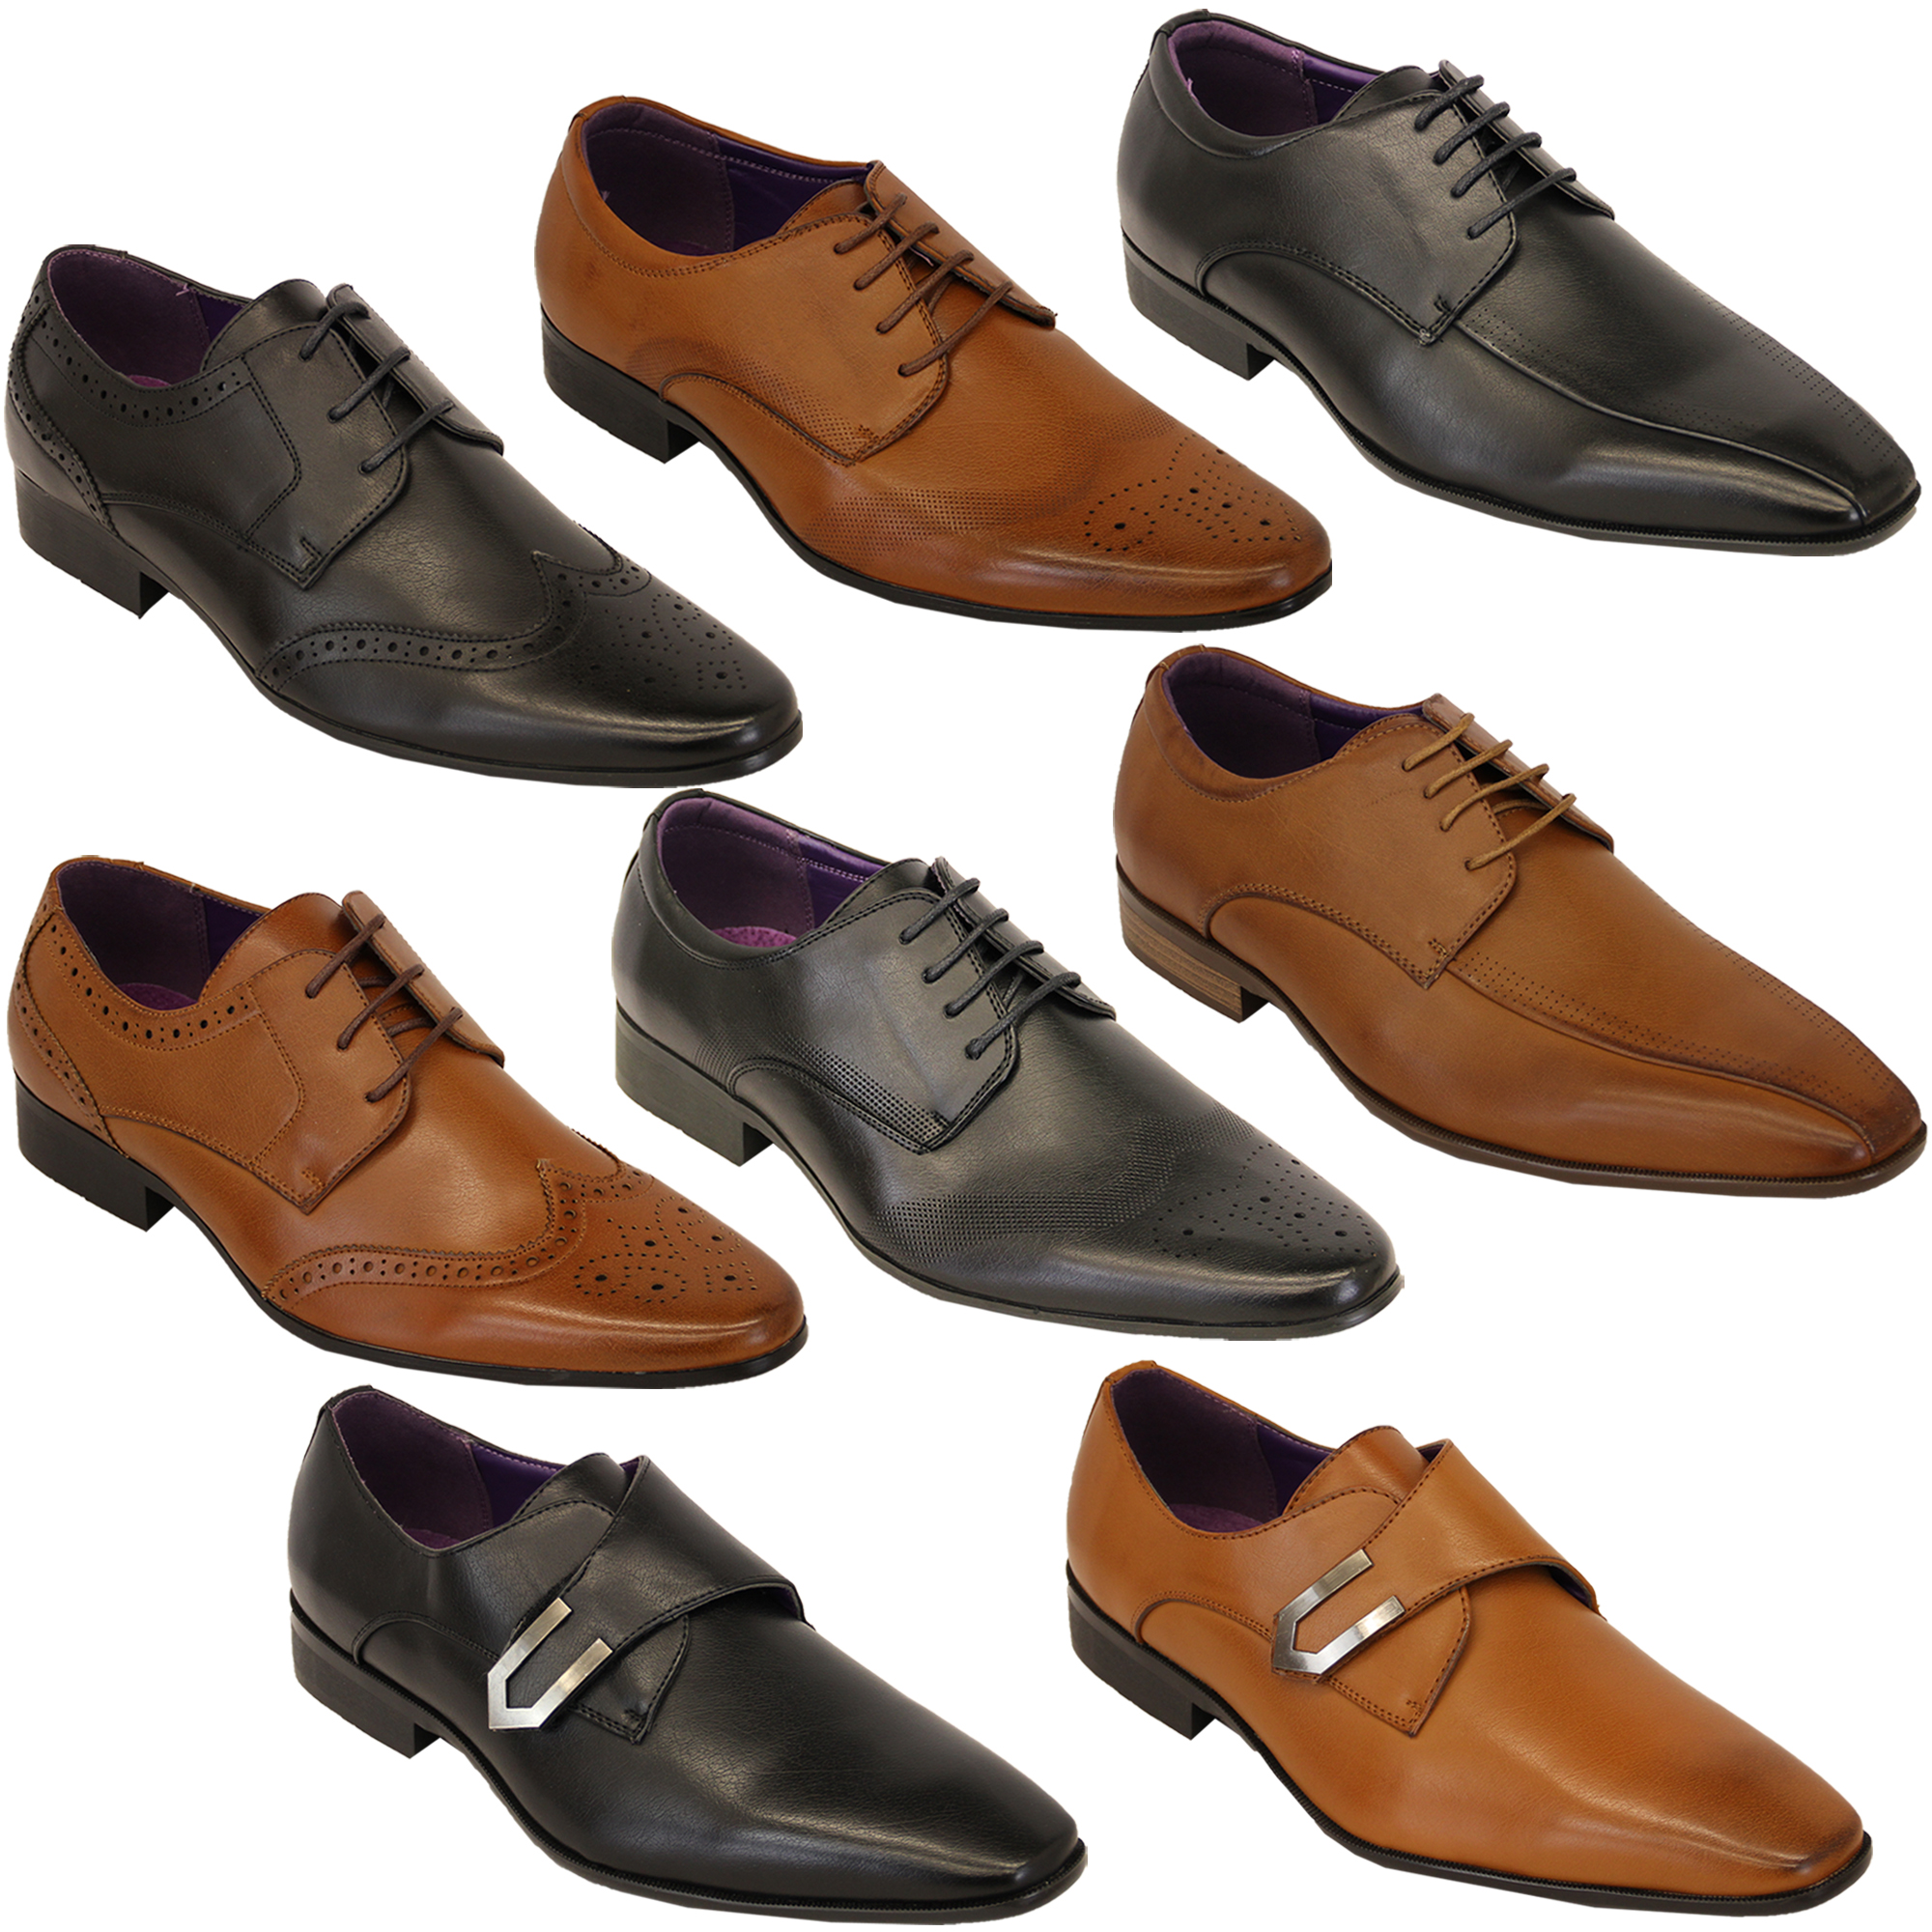 Mens Italian Shoes Leather Look Brogue